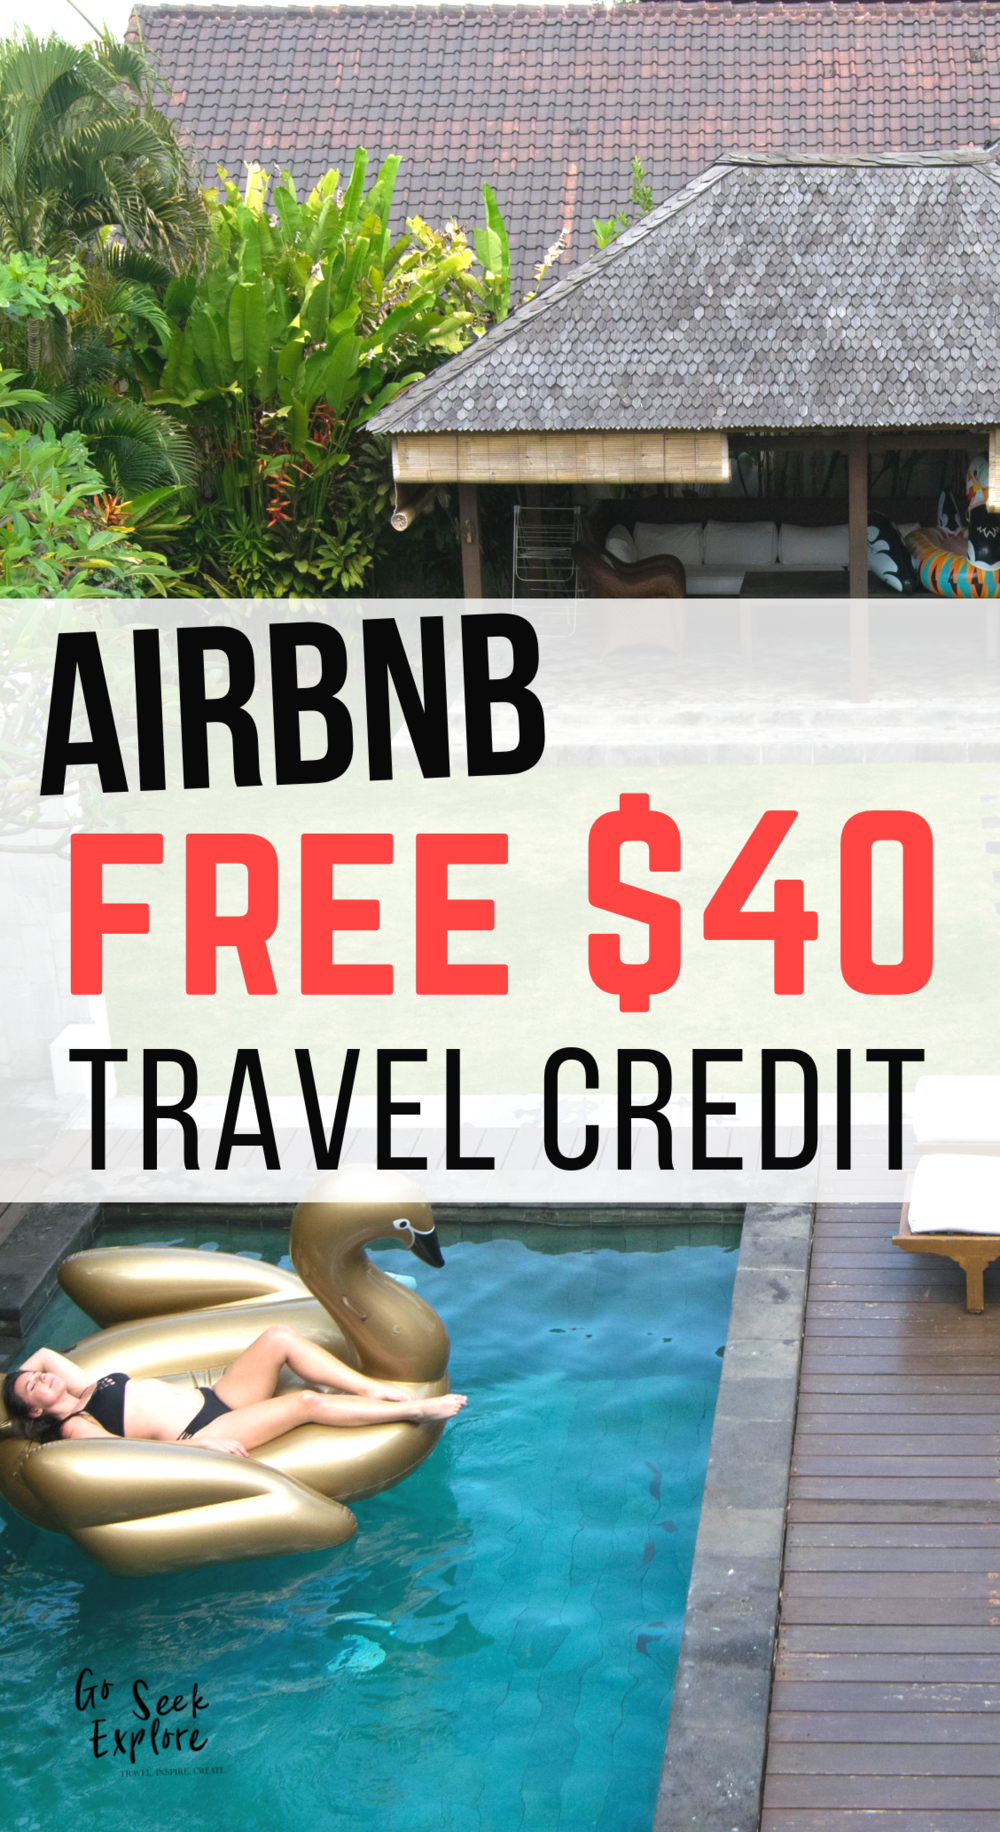 Get a free travel credit worth $40 to Airbnb! (Claim now, book later!) Airbnb is my go-to site for amazing places to stay while traveling. You live like a local and have access to the amenities that you would back home. I've loved finding homes with a fully equipped kitchen, washer/dryer, desk, wifi, & great views. Plus, you often get great tips from a local on what you should ACTUALLY do in their city - after all, they're the experts! Click through & get your free Airbnb discount. Bon voyage! / Bali-Airbnb-free-travel-credit